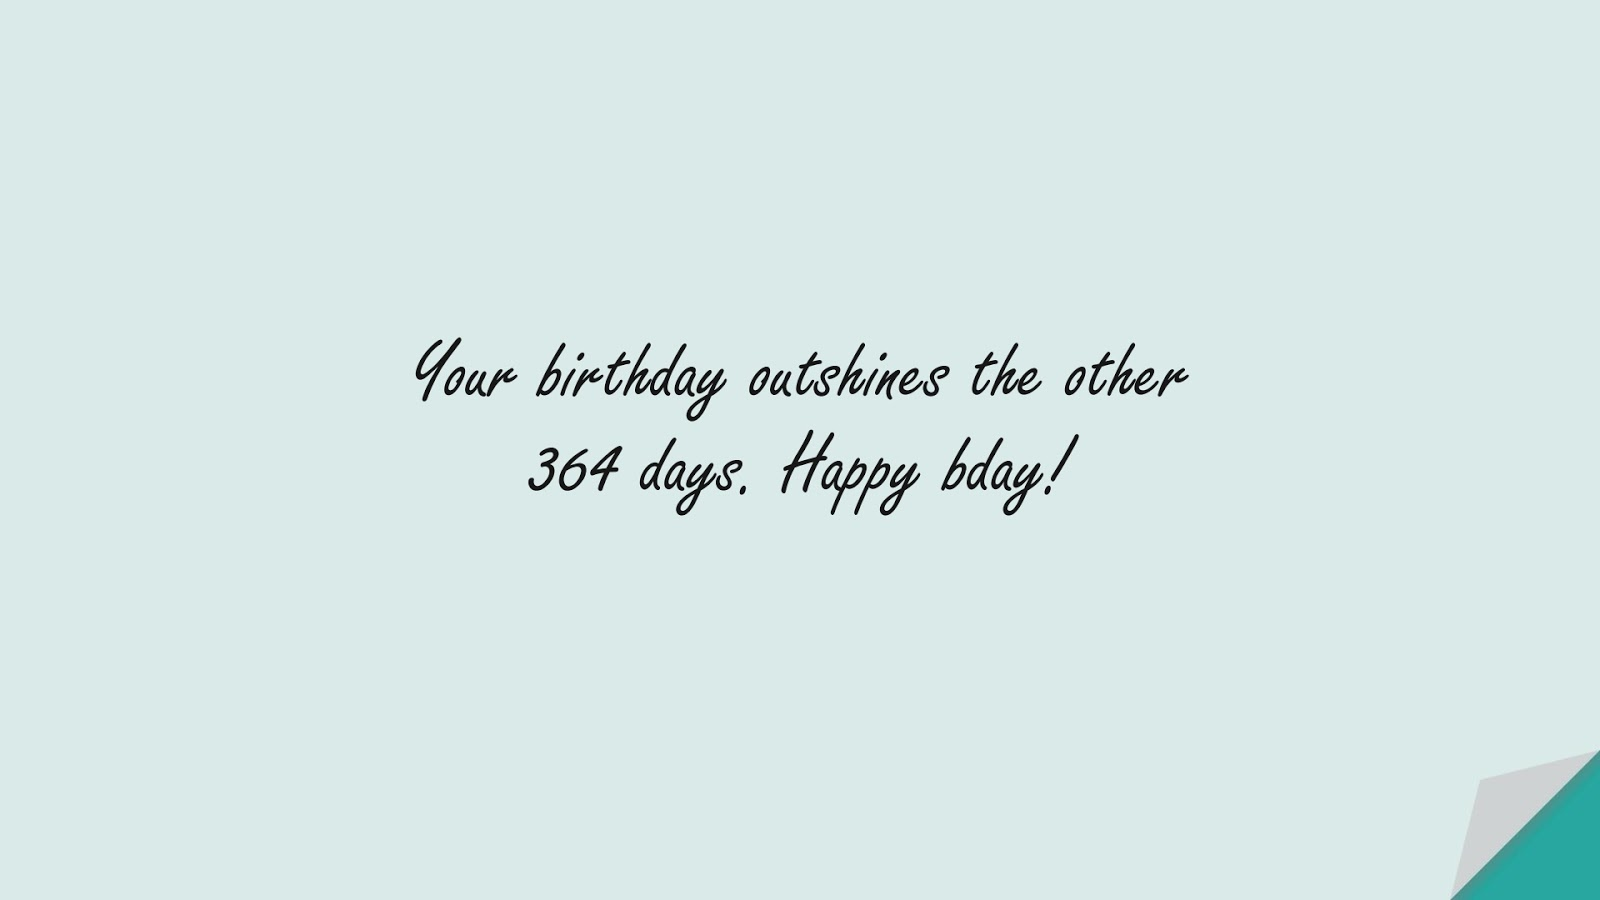 Your birthday outshines the other 364 days. Happy bday!FALSE